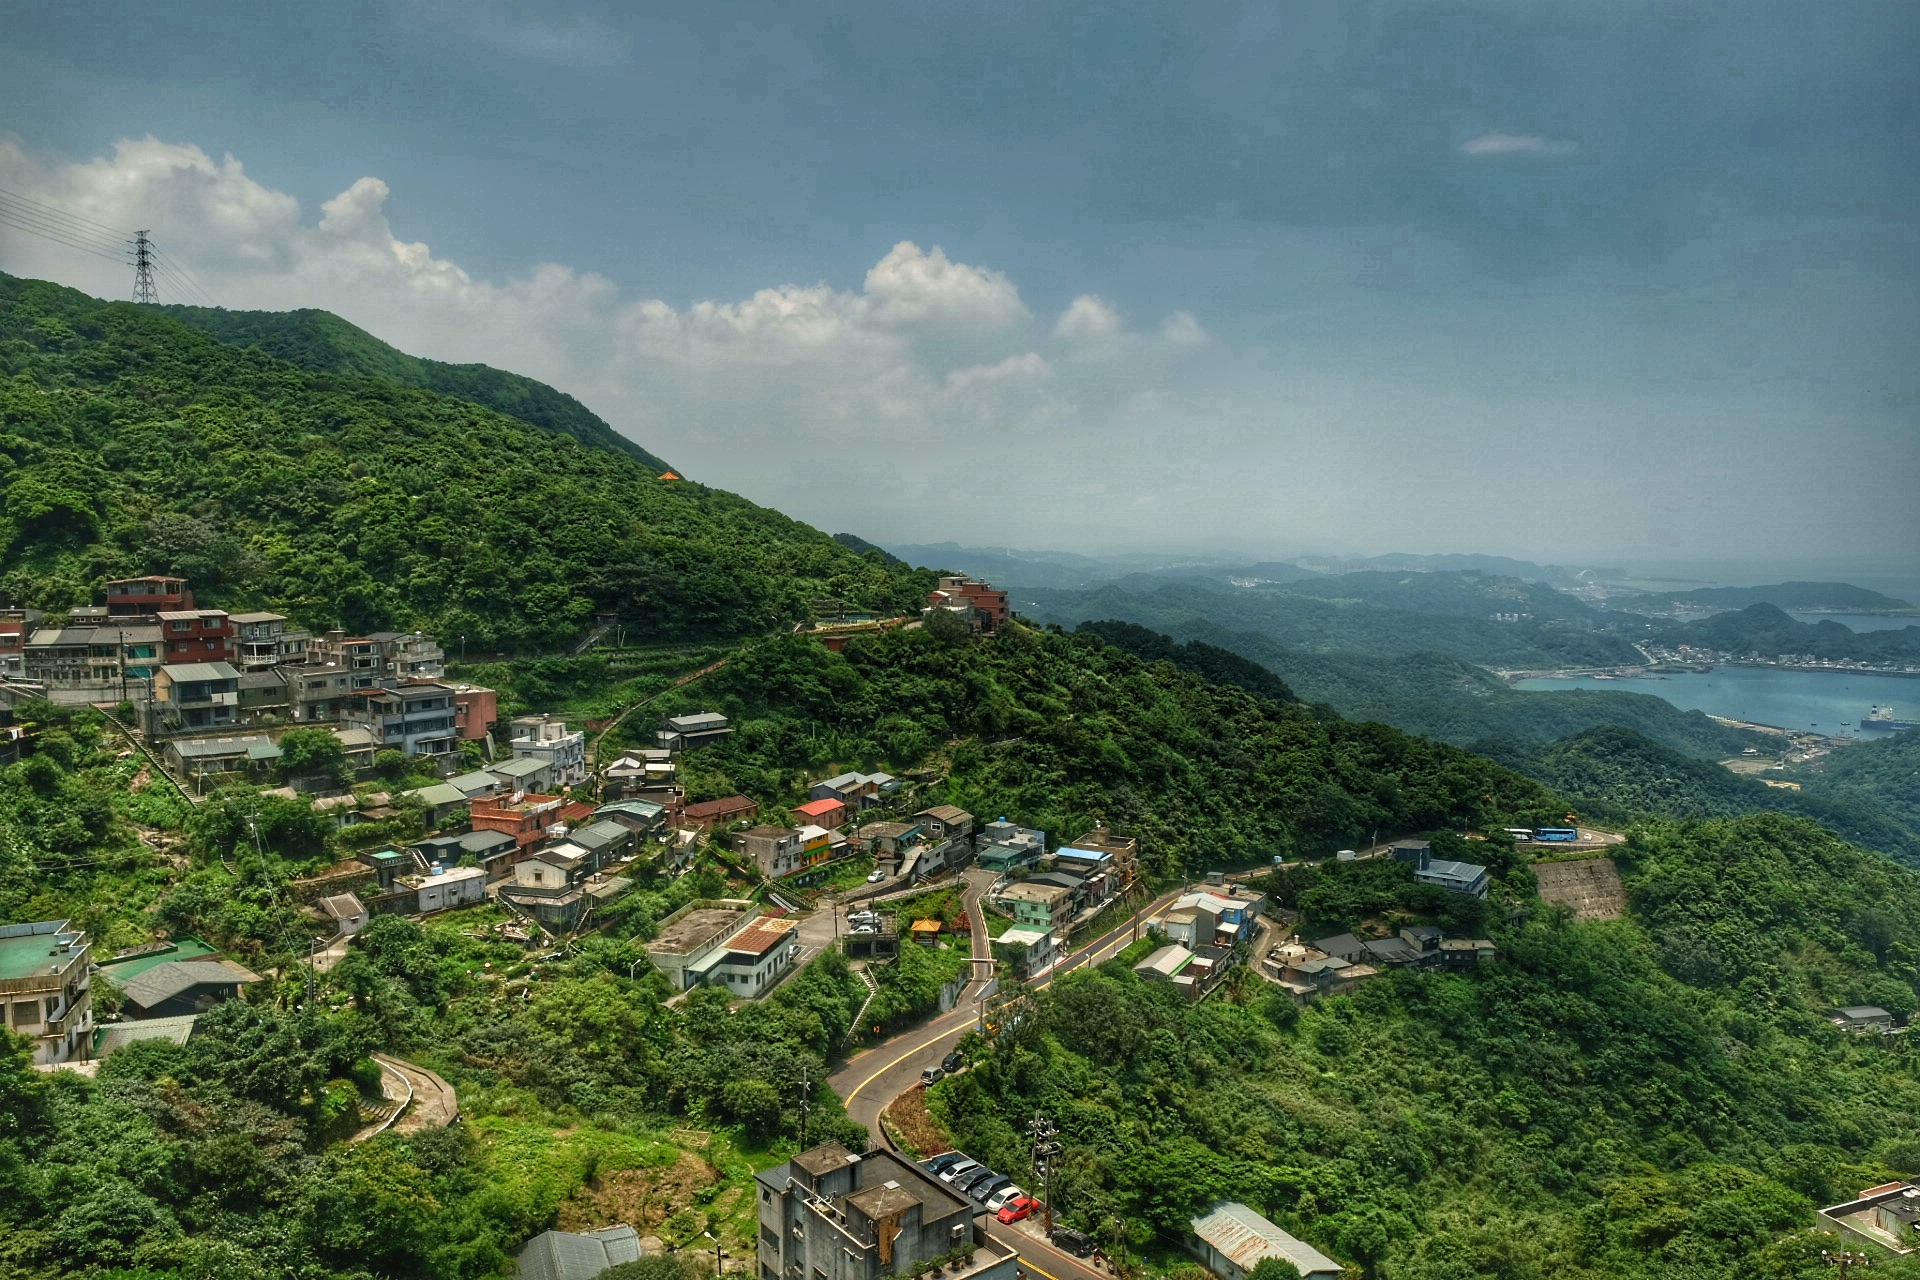 The town of Jiufen.